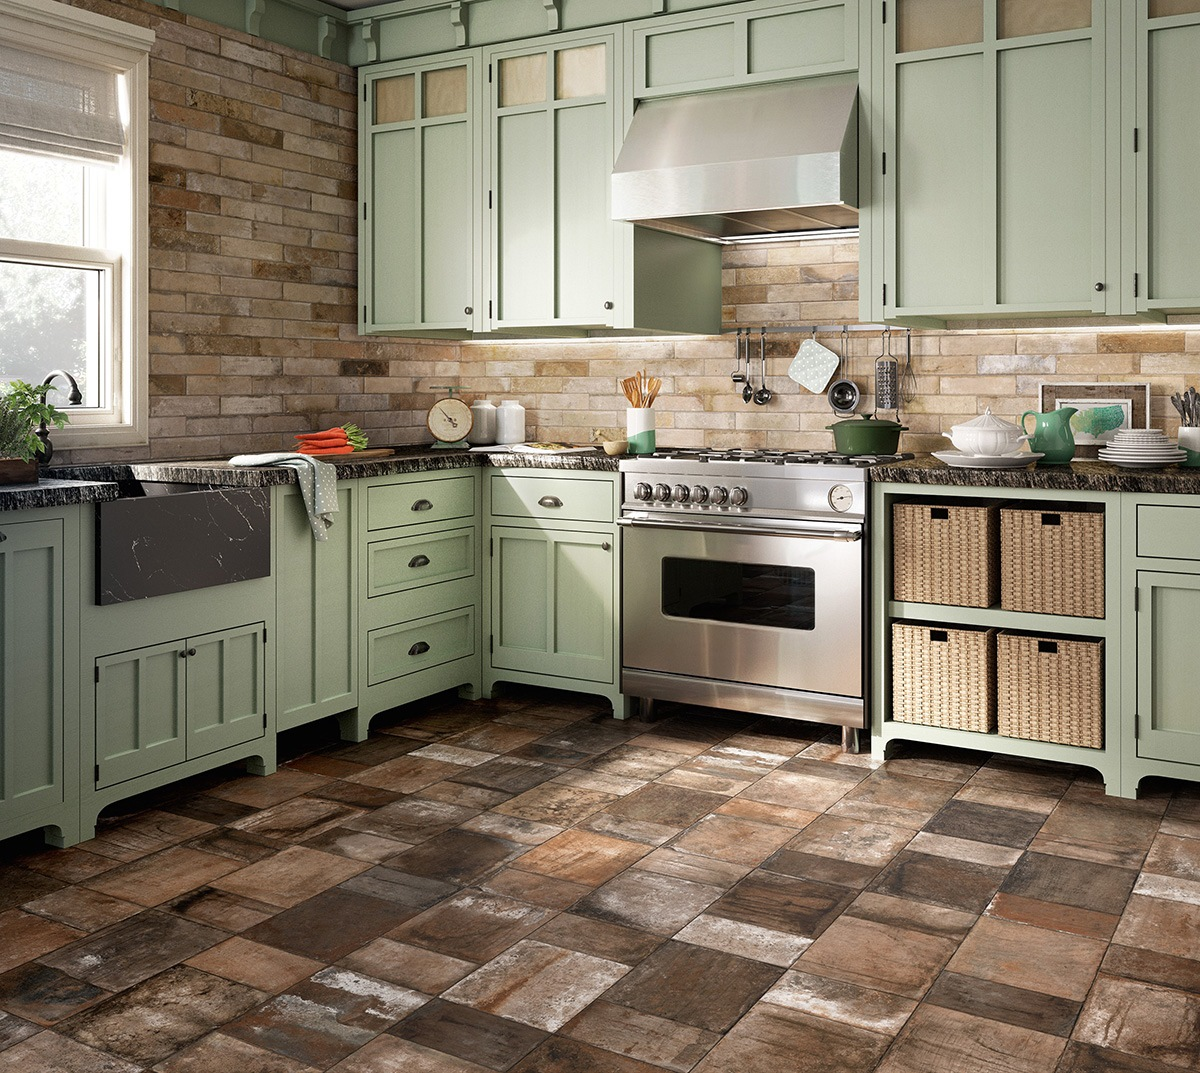 Country Kitchen Look: Flooring Of Parquet Boards For Kitchen Contry Stile